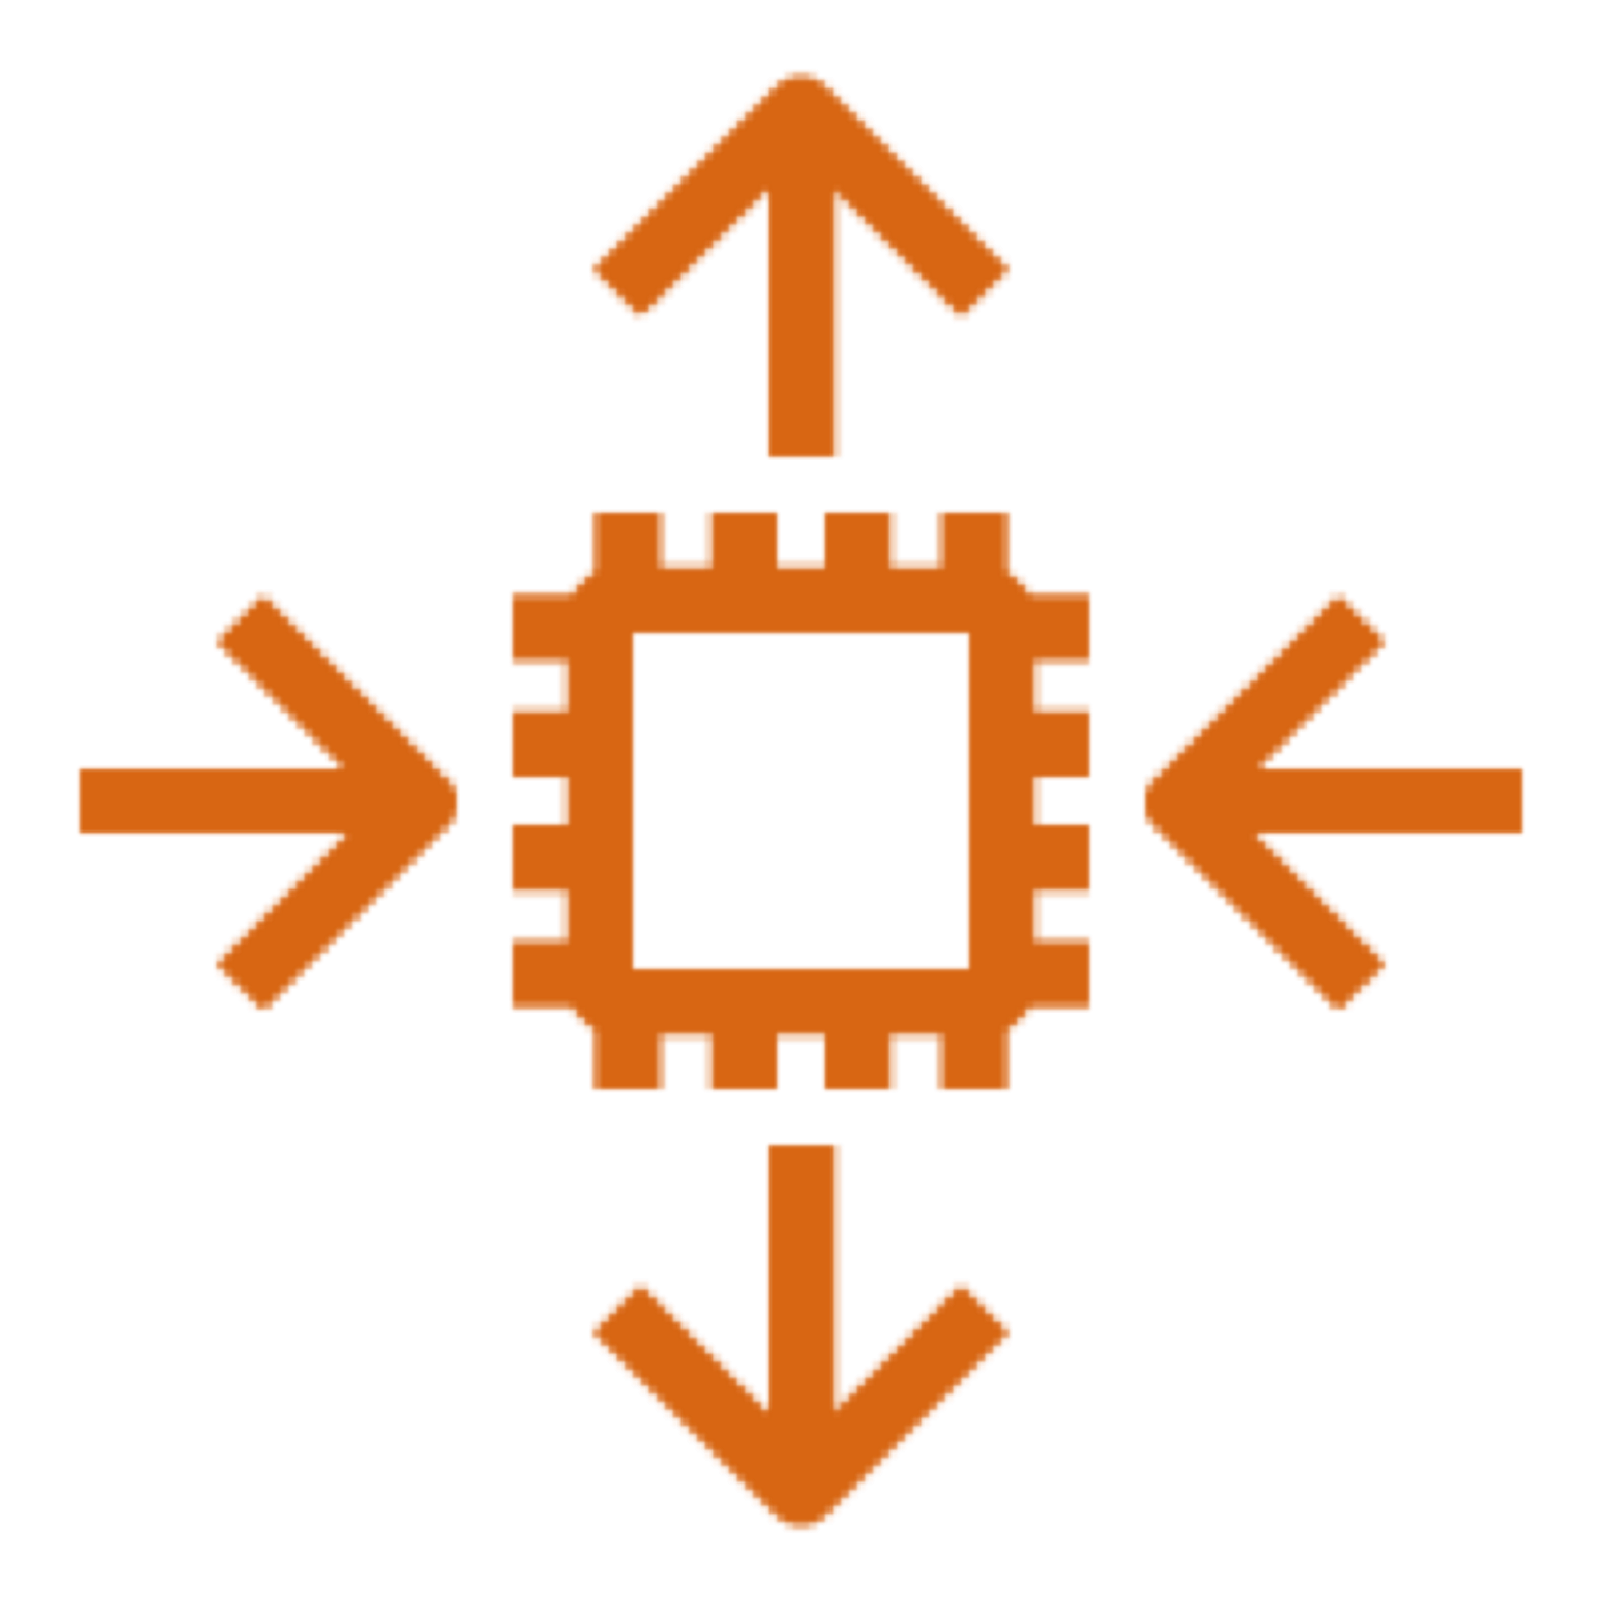 Amazon EC2 Auto Scaling icon depicting a computer chip with horizontal arrows pointing toward it and vertical arrows pointing away from it, representing the ability to scale in or out